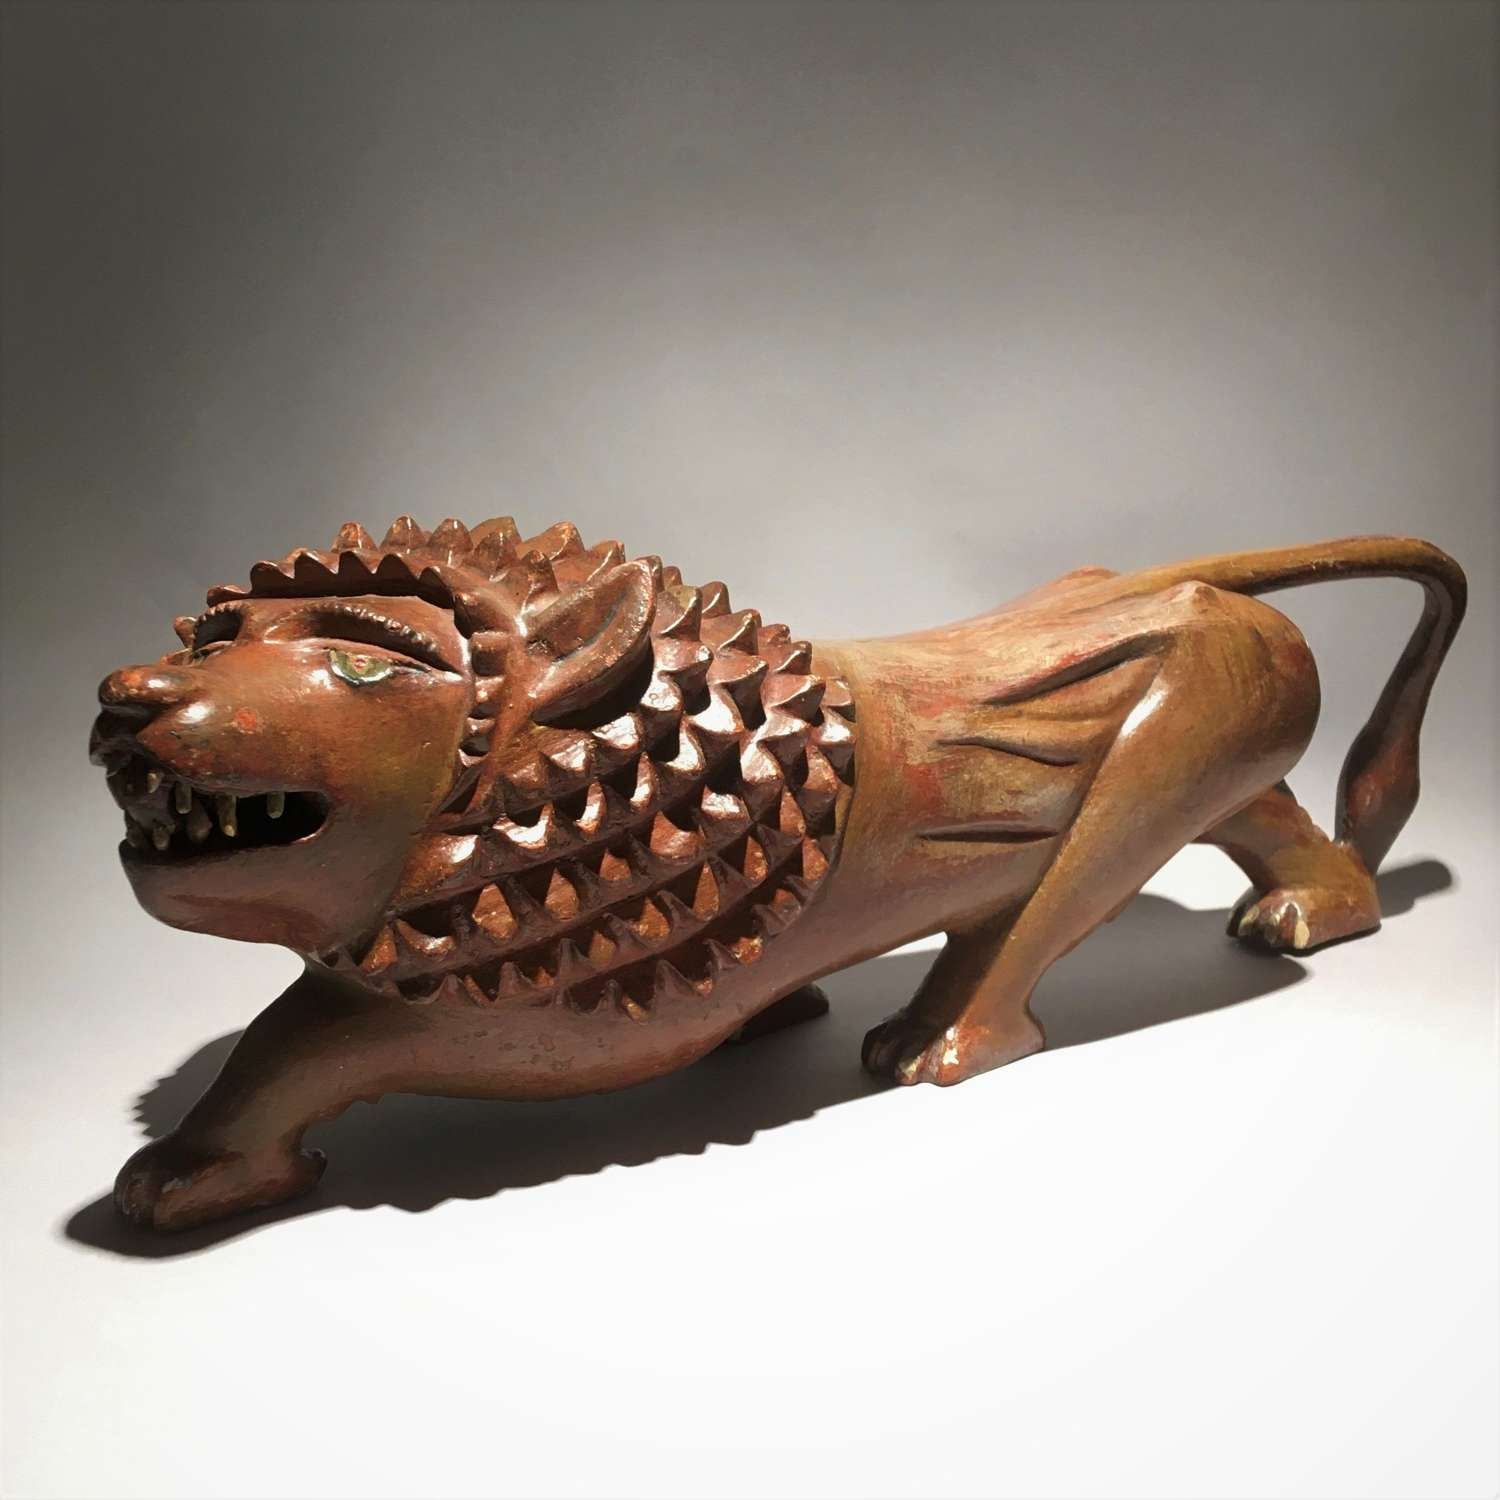 Folk Art Sculpture of a Prowling Lion